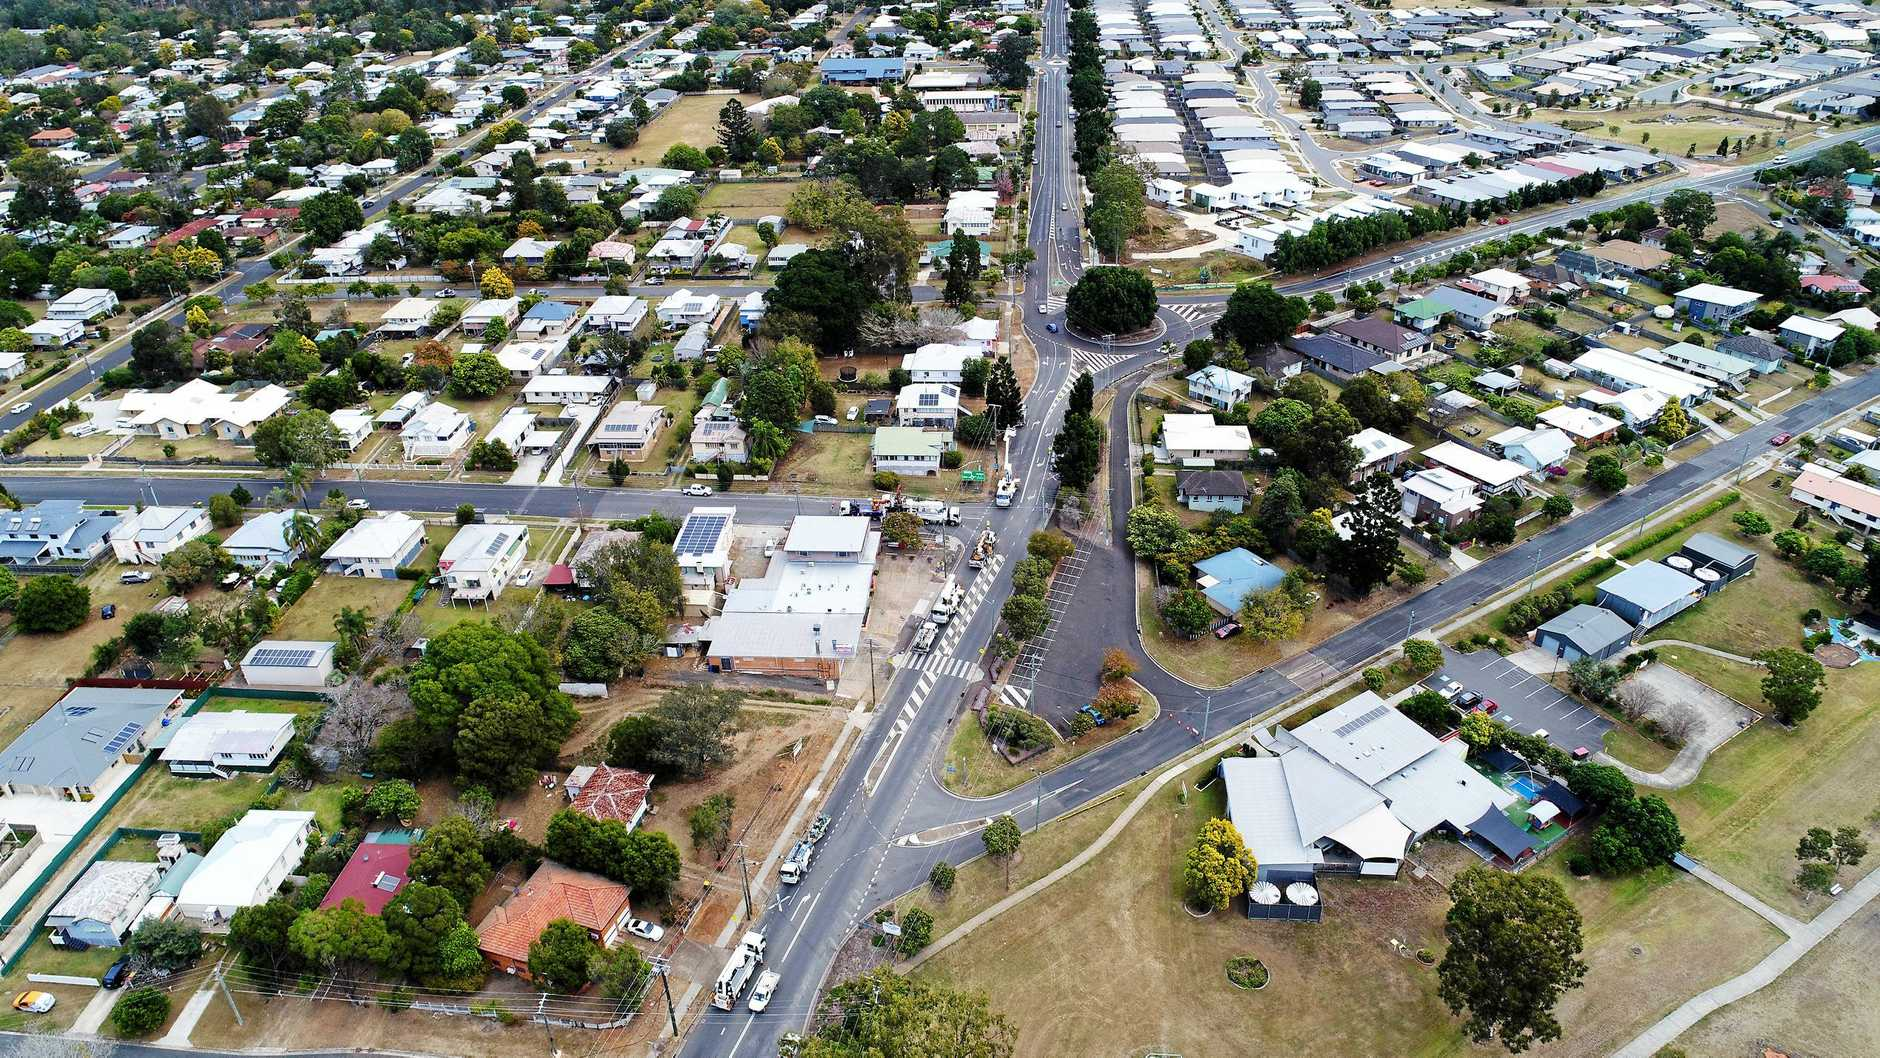 Aerial view of road widening on Old Toowoomba Road at One Mile.